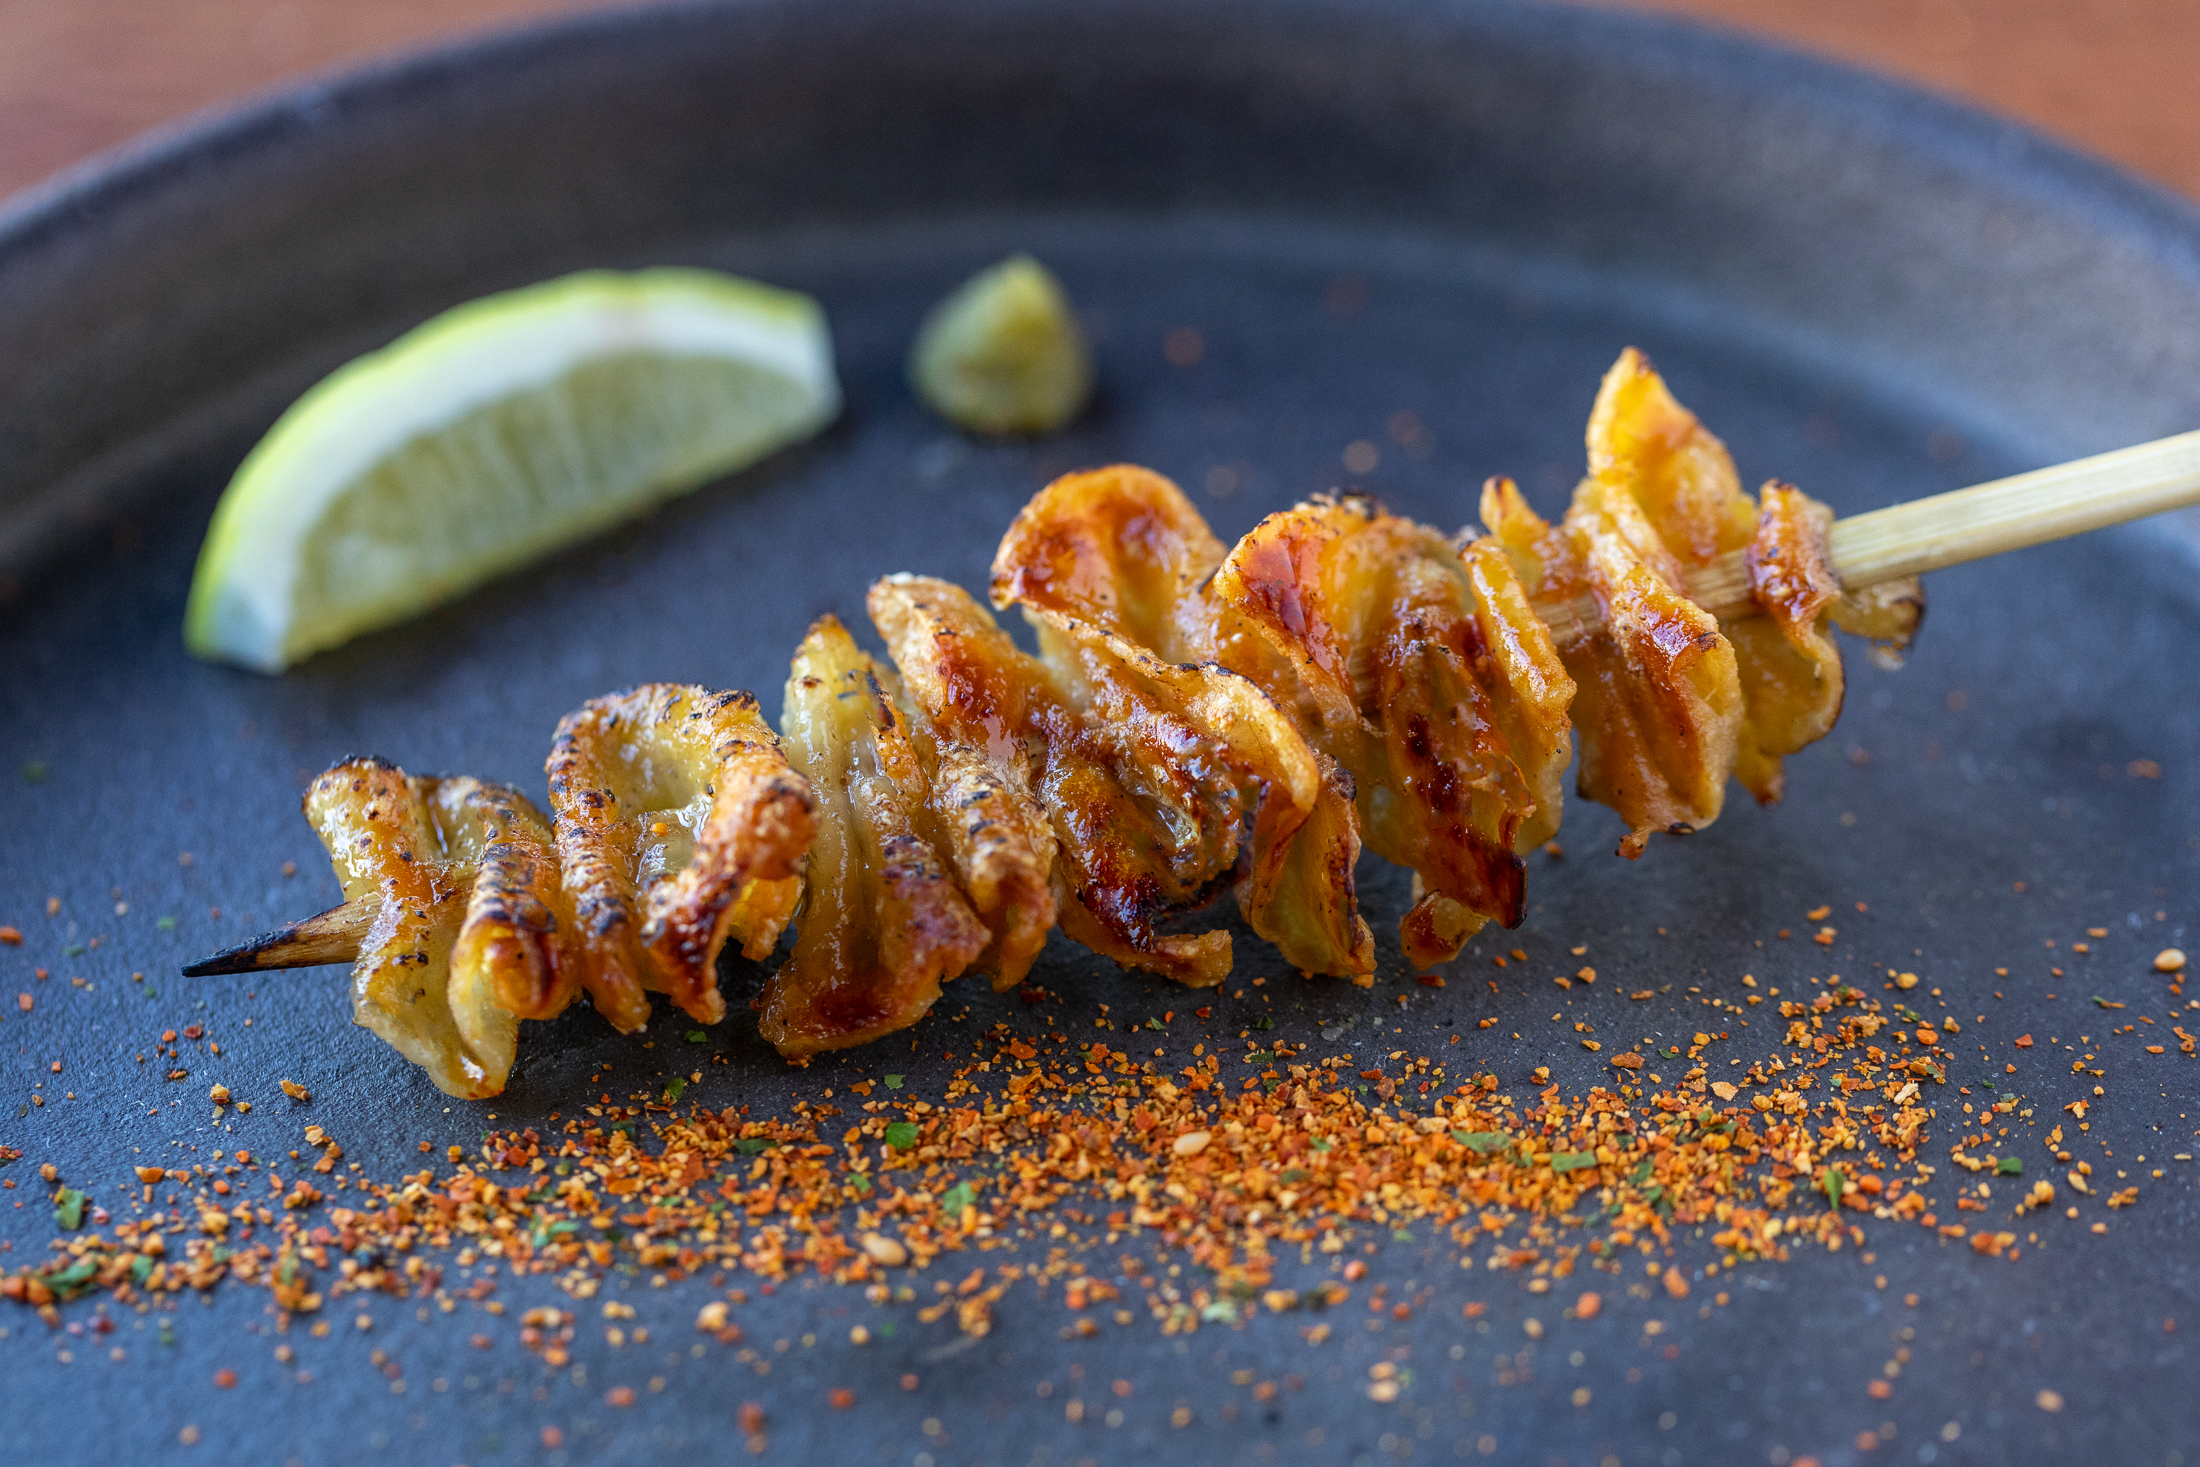 09-2019_OTOTO_Food_Final Images_Web-Res_17